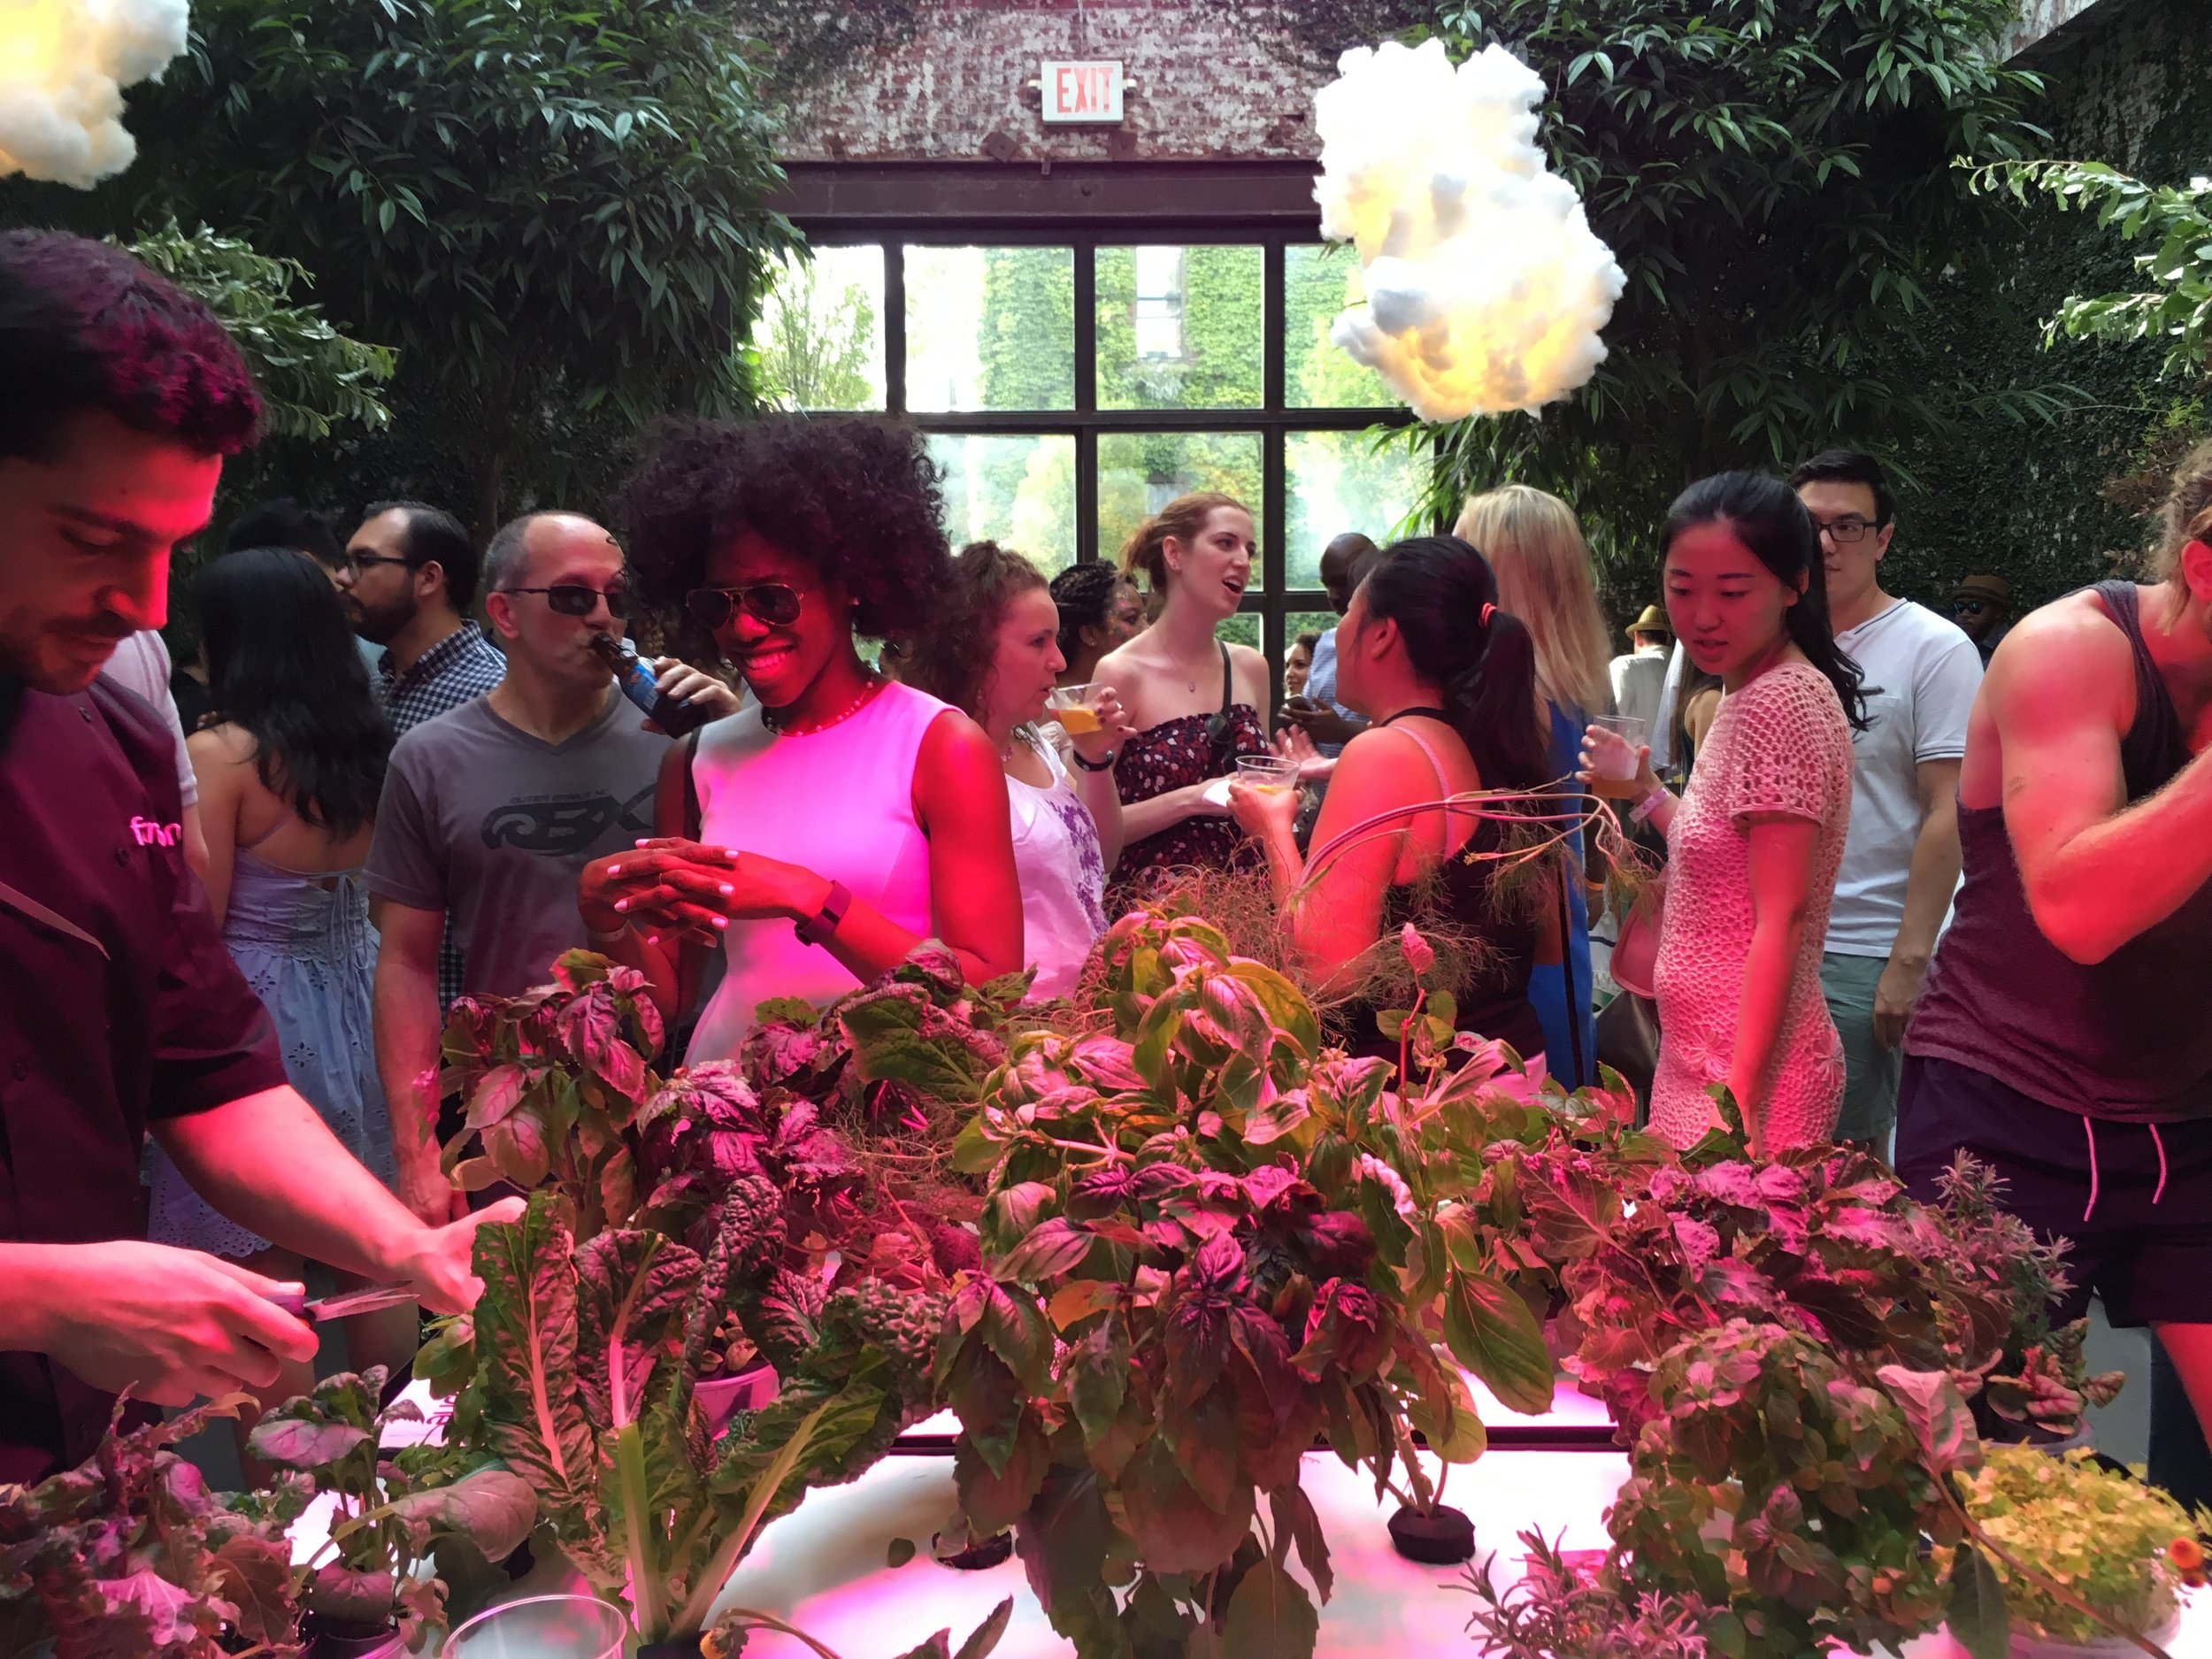 Guests receive plant descriptions and flavor notes from farm staff, tasting different unusual herbs like amethyst basil, wood sorrel and more.